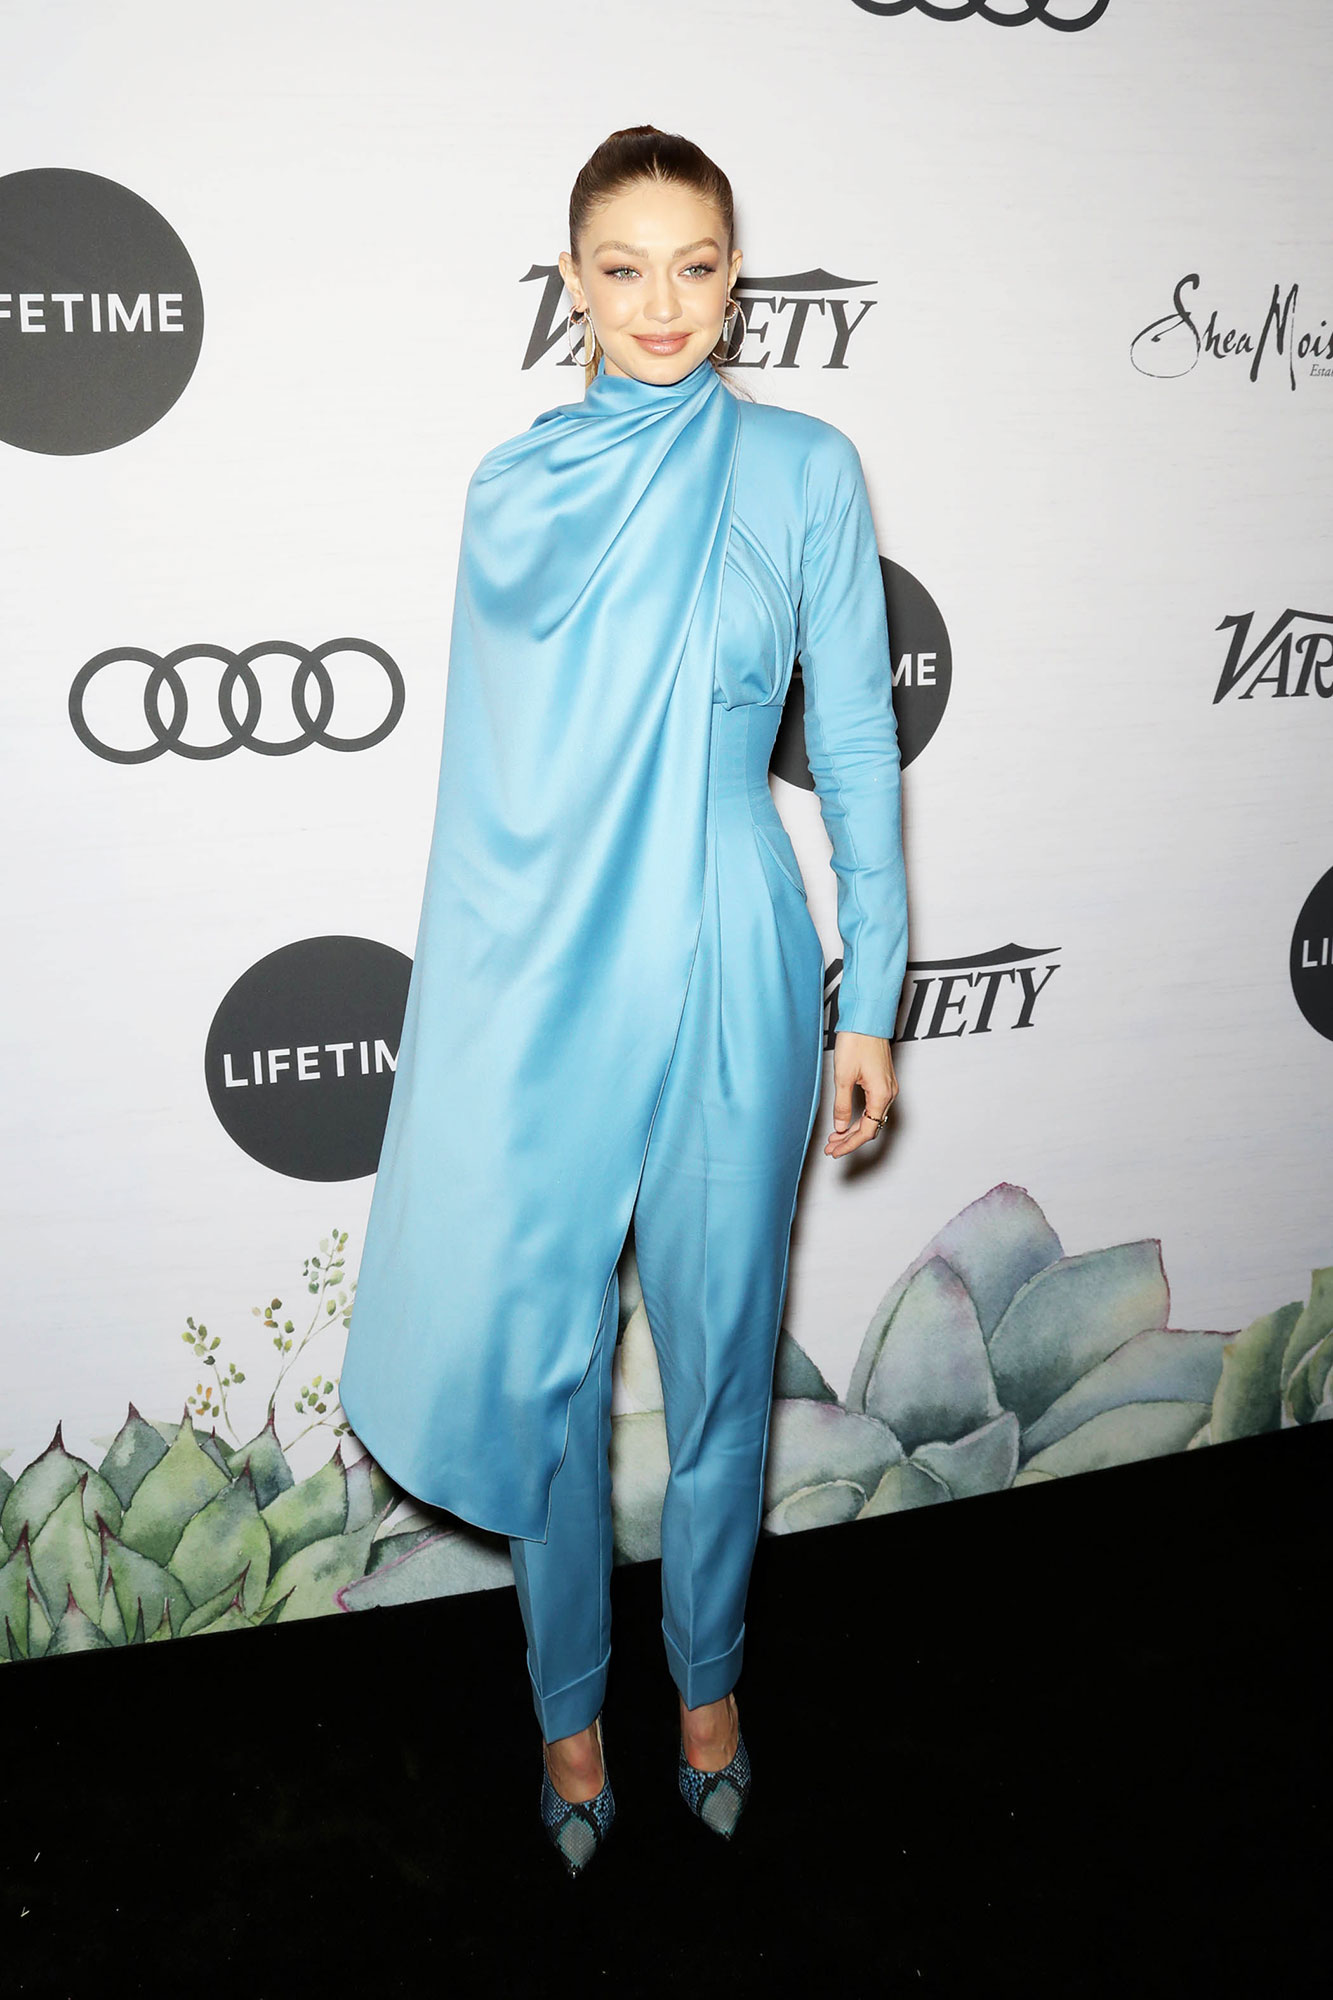 Gigi Hadid Variety's Power of Women - The blonde beauty wore a sky-blue cape-neck top with matching high-waisted trousers from Emilia Wickstead and Chopard jewelry.